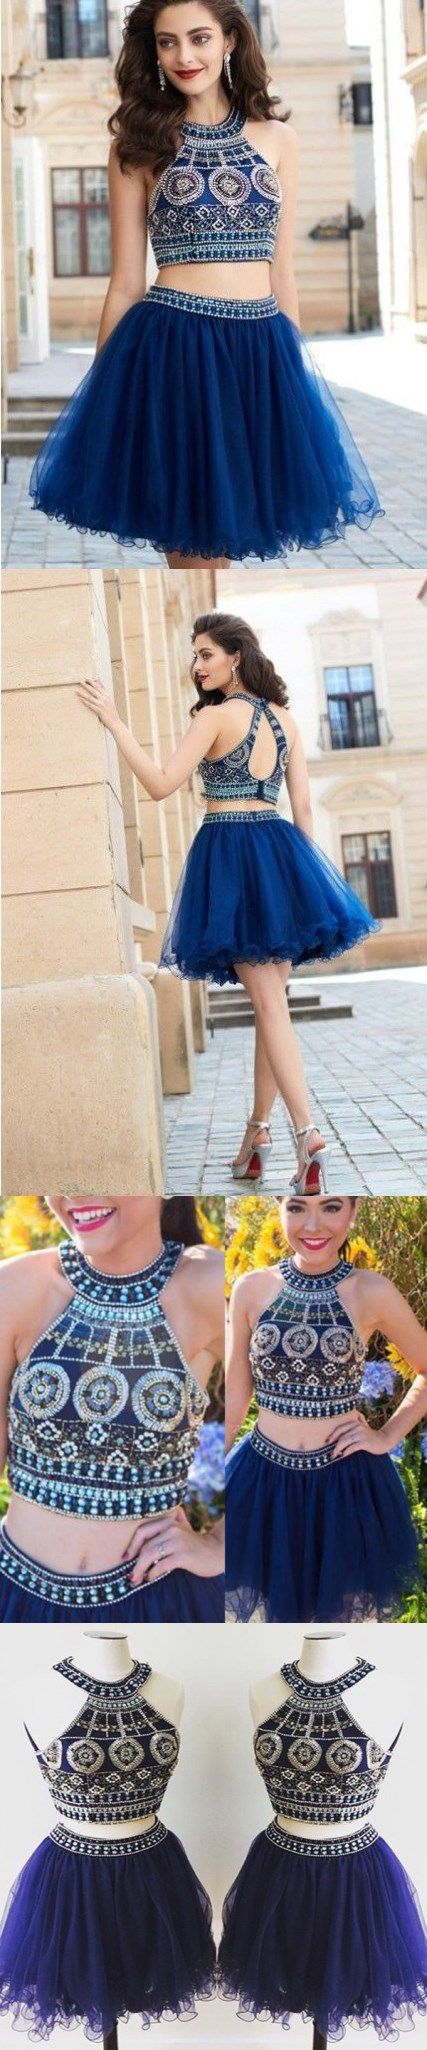 Two piece homecoming dresses sparkly aline short prom dress chic